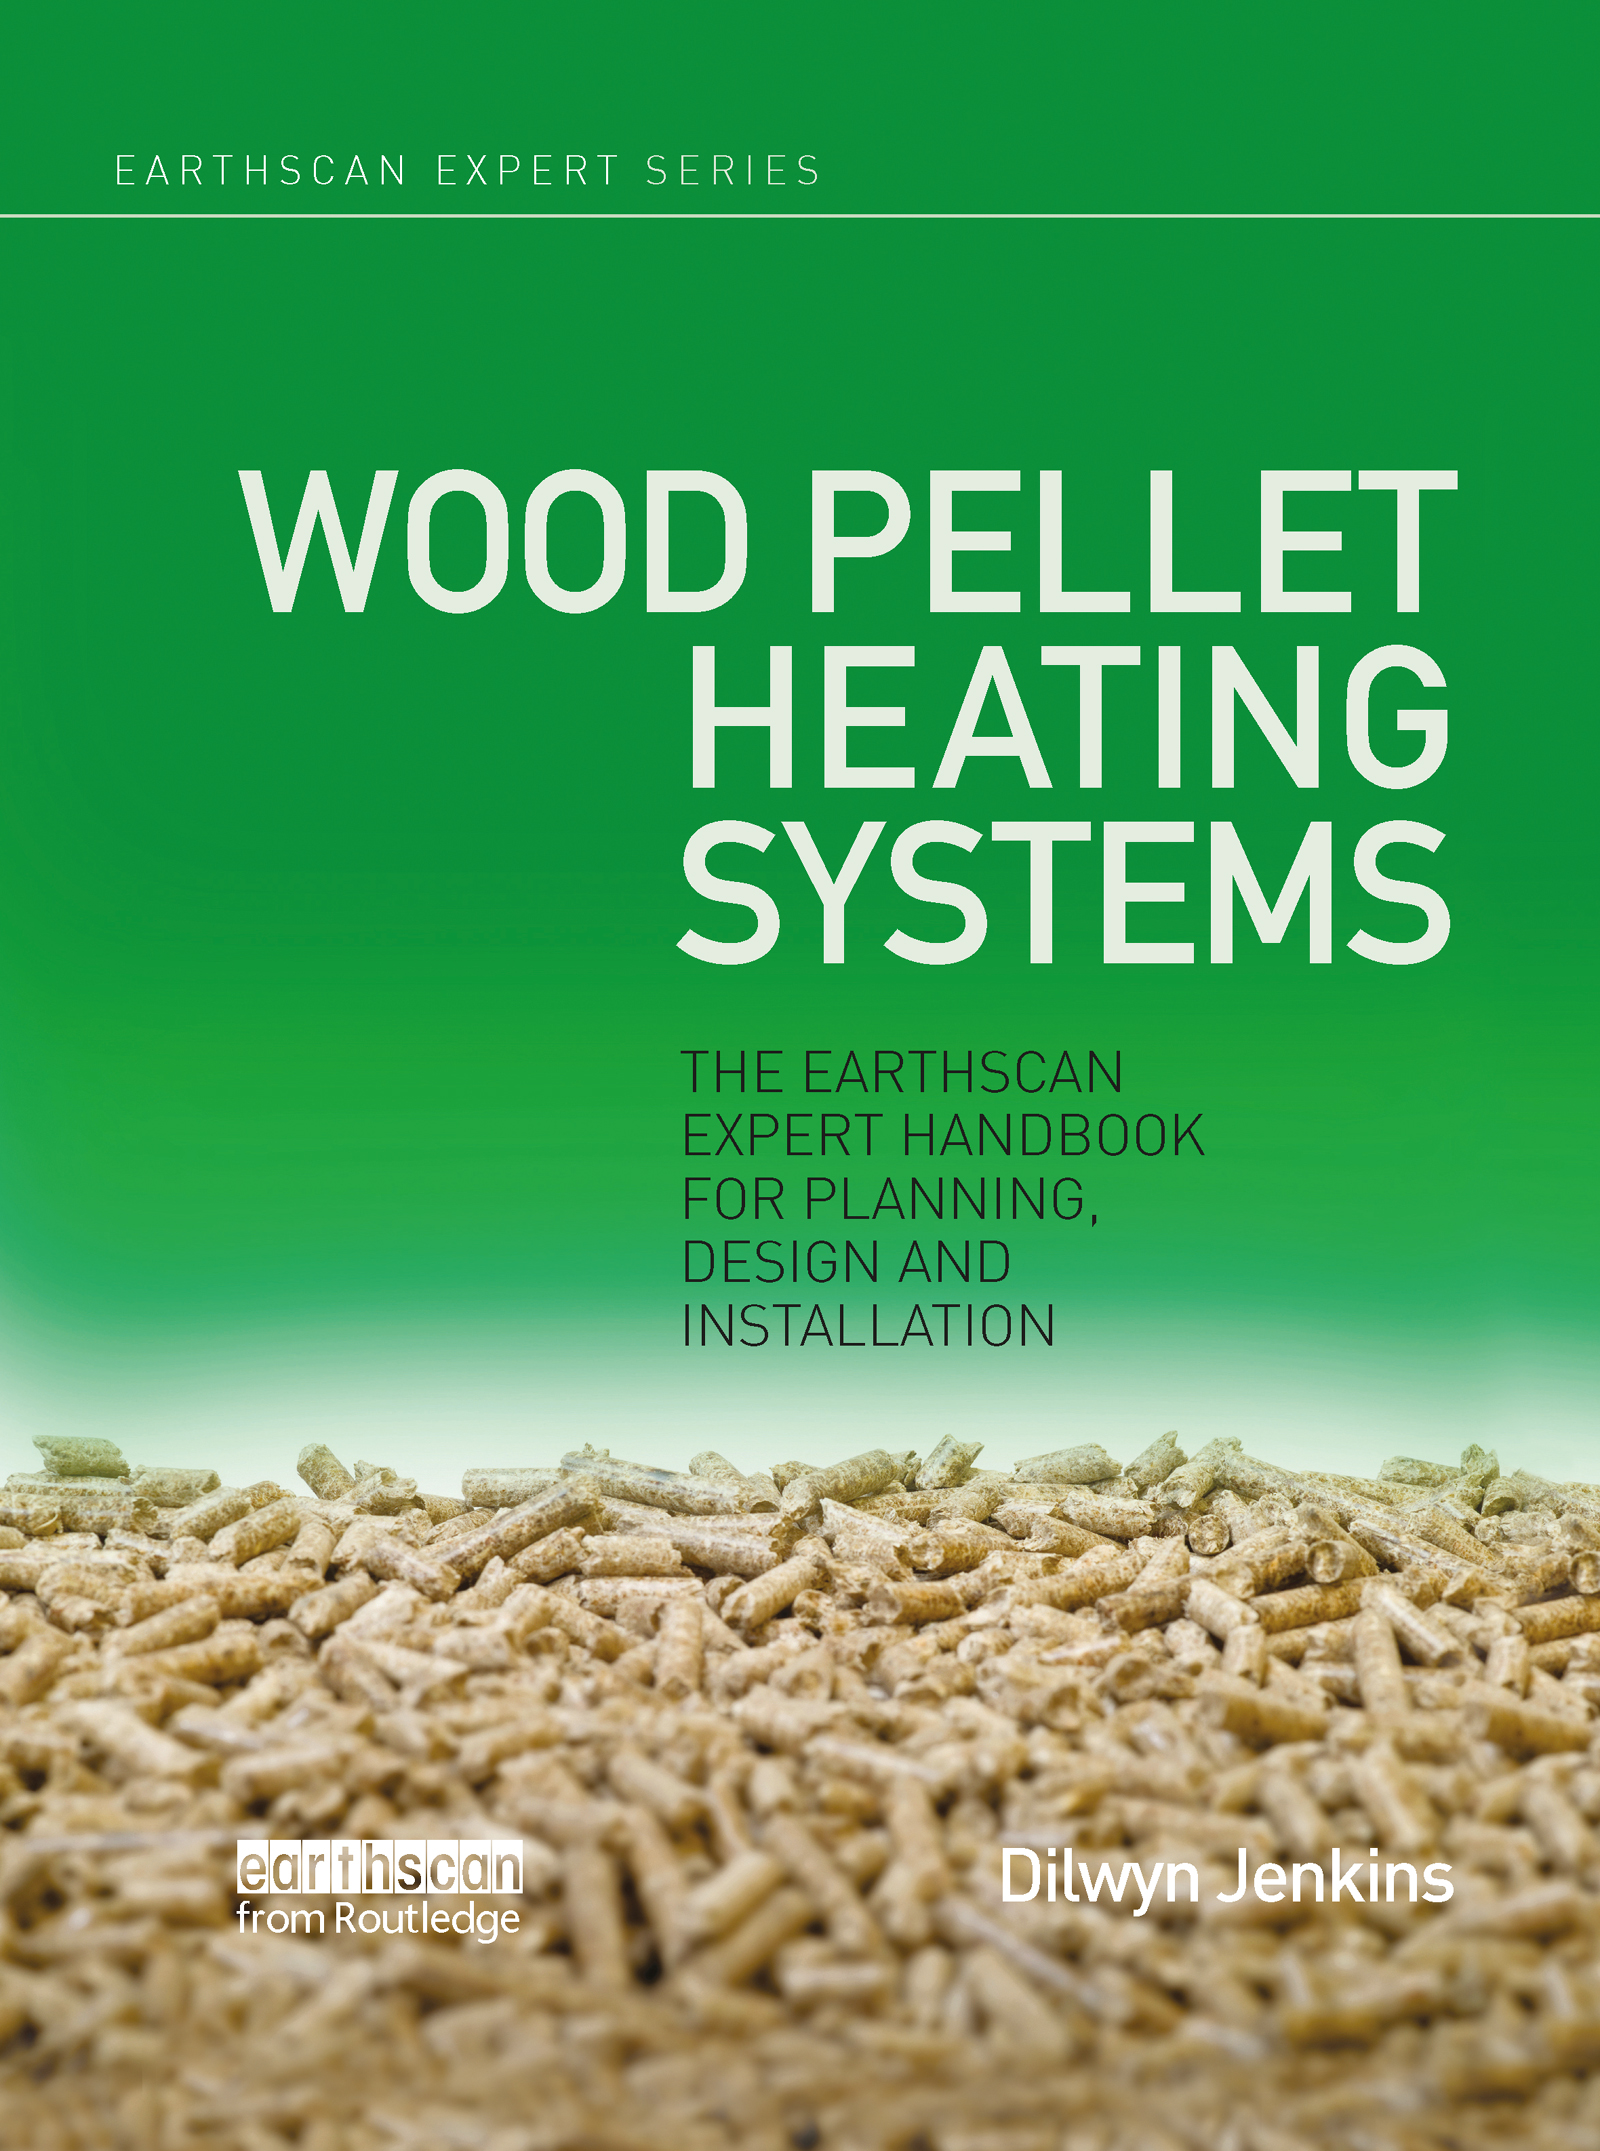 Wood Pellet Heating Systems: The Earthscan Expert Handbook on Planning, Design and Installation book cover